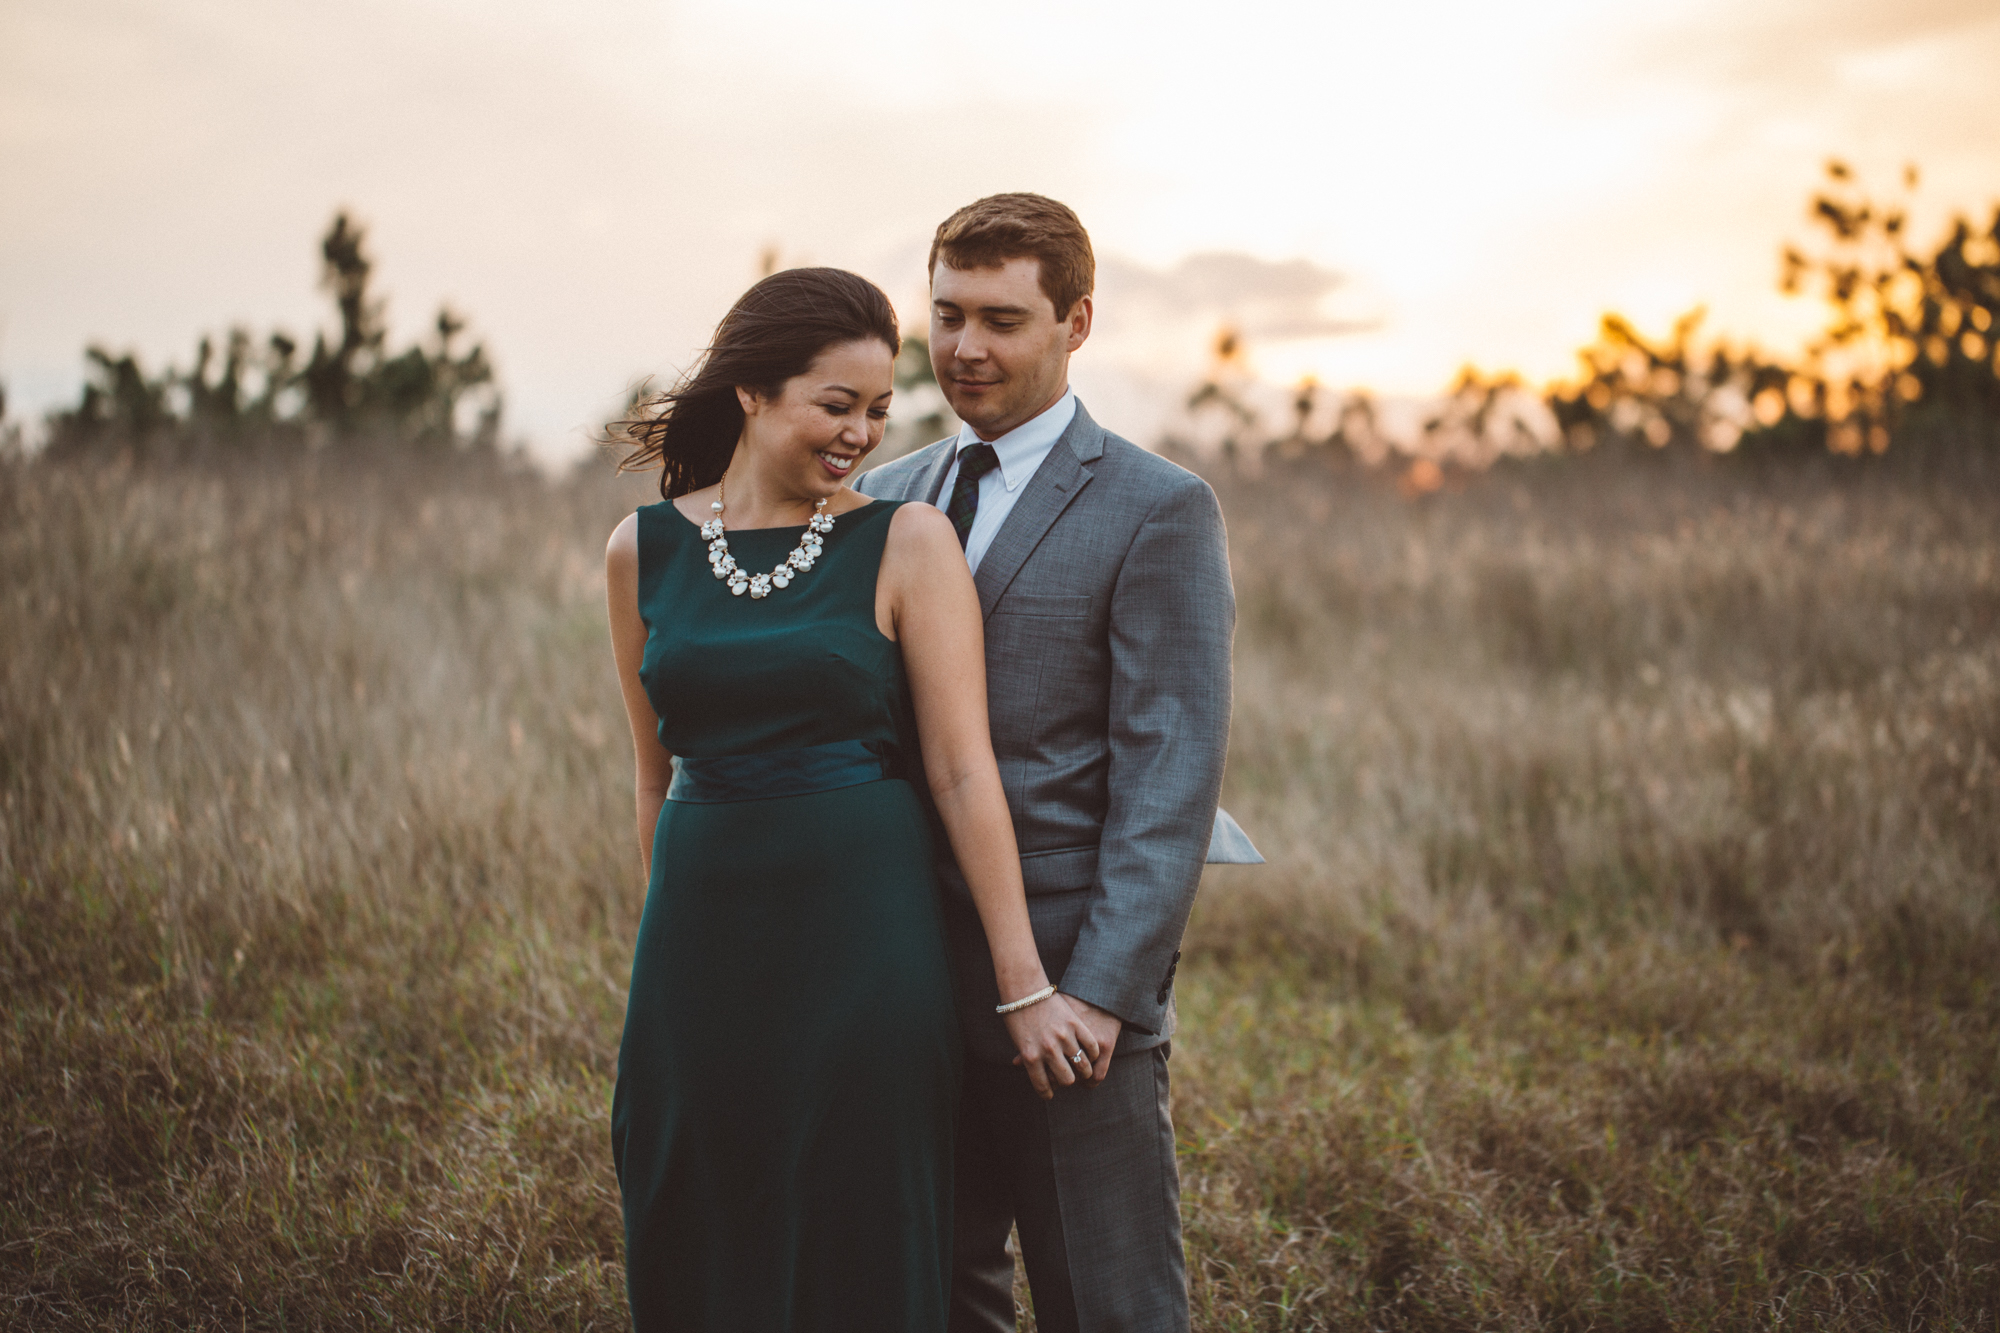 Orlando Engagement Photographer-77.jpg